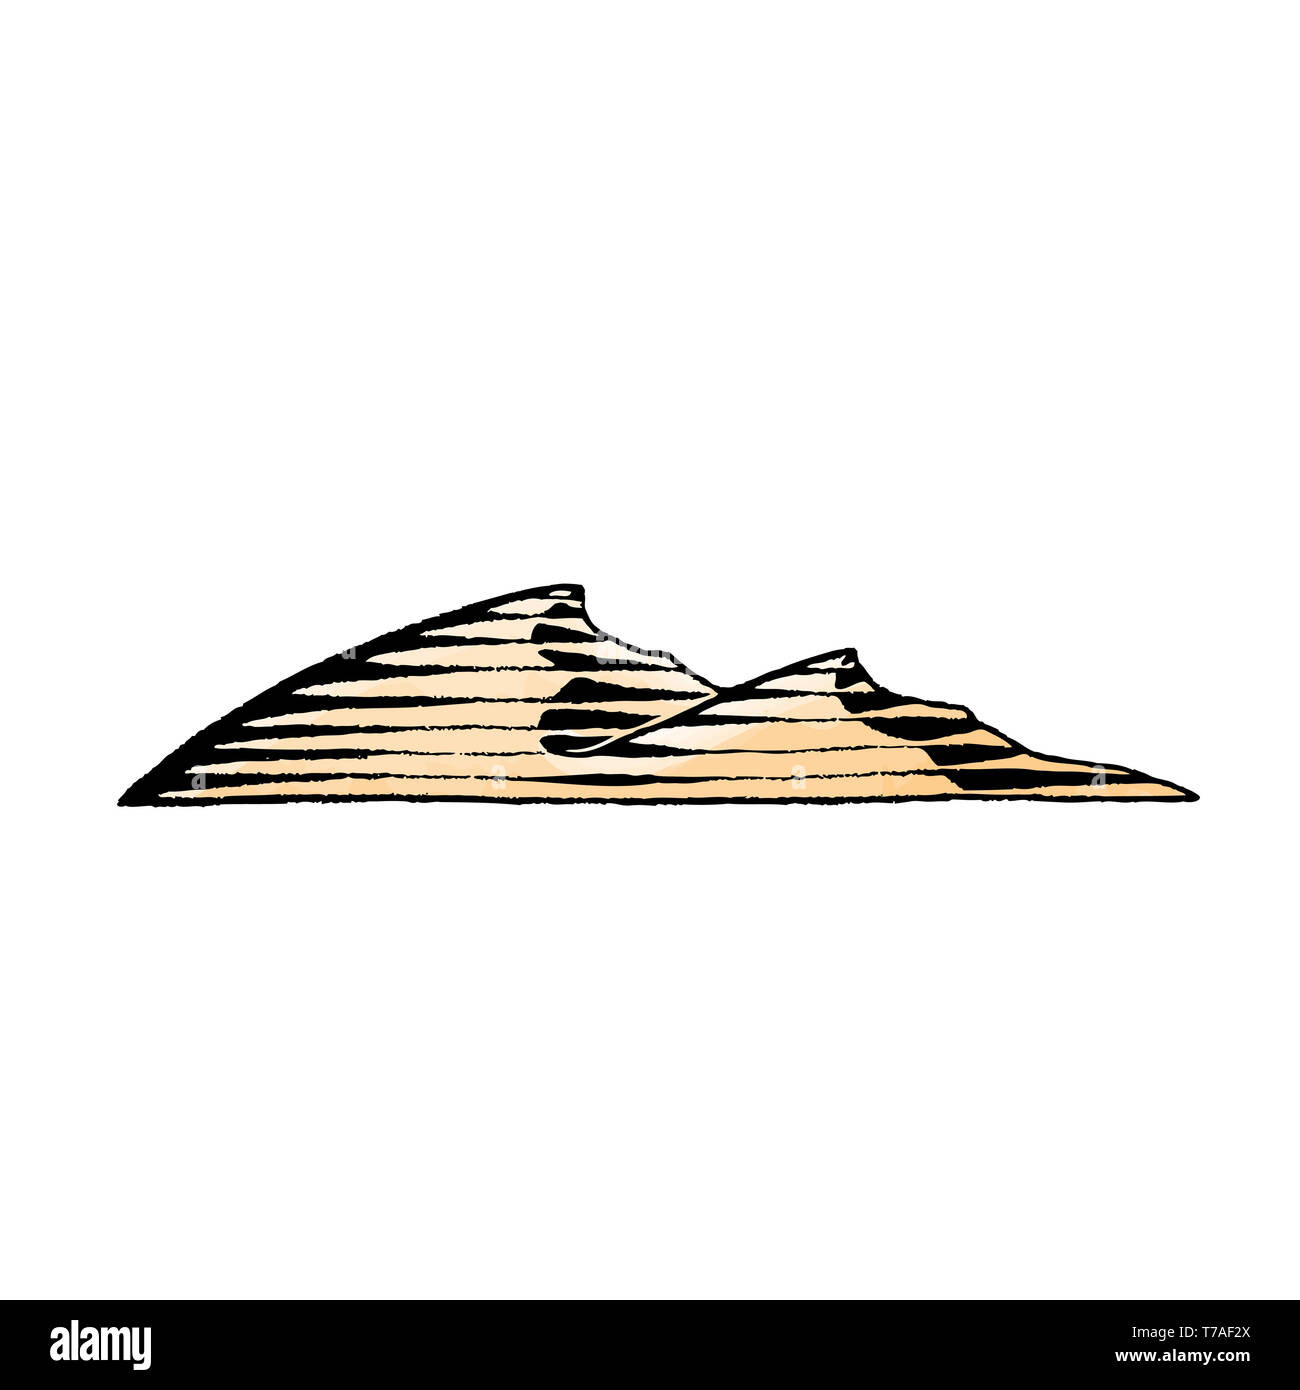 Vector Illustration of a Scratchboard Style Ink and Watercolor Drawing of Sand Dunes - Stock Image